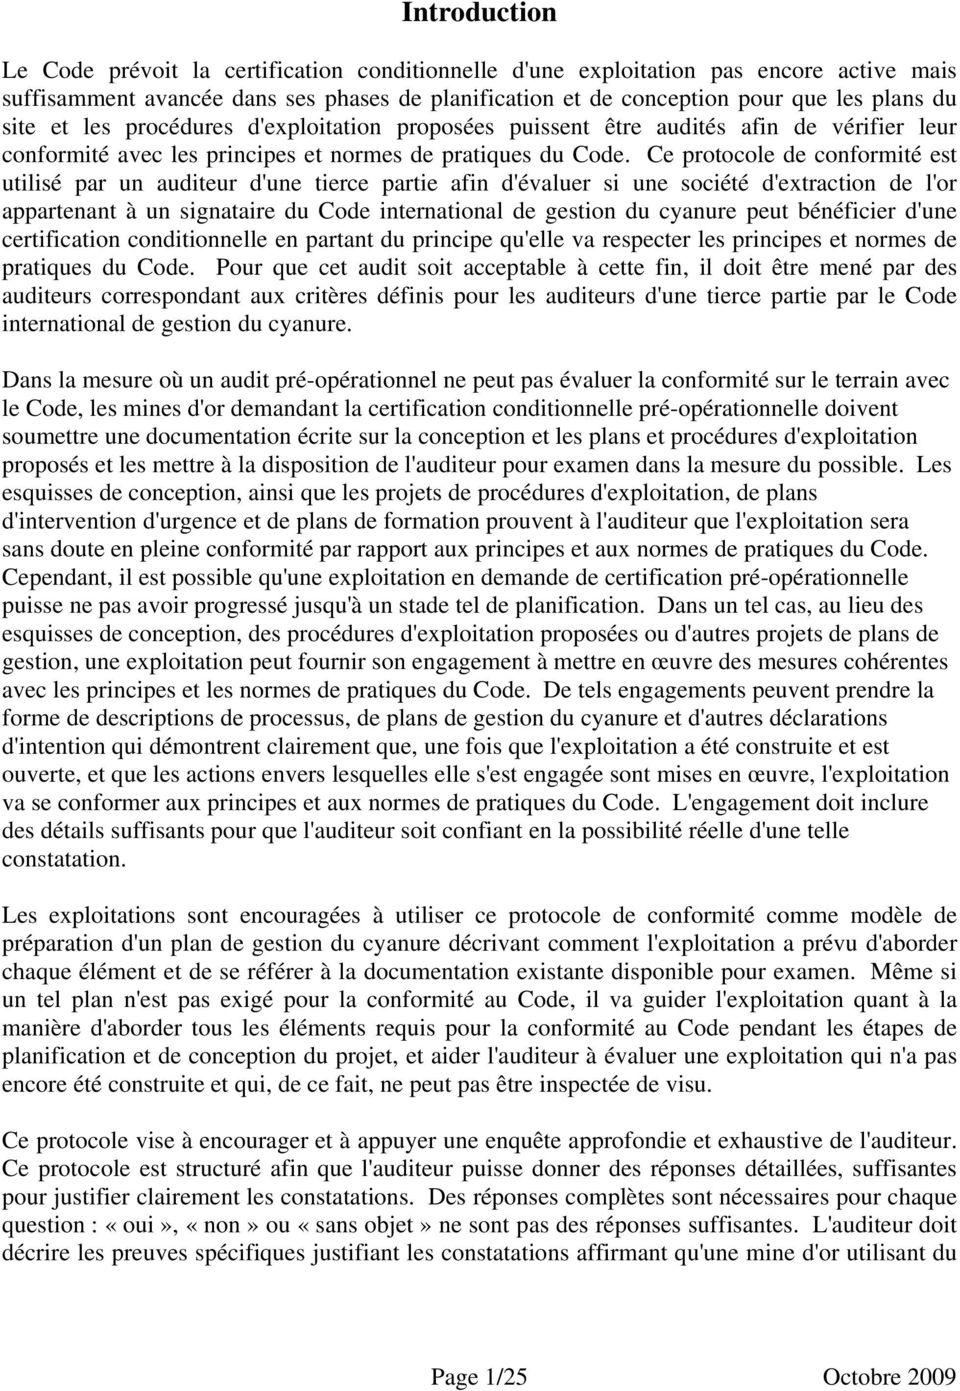 Ce protocole de conformité est utilisé par un auditeur d'une tierce partie afin d'évaluer si une société d'extraction de l'or appartenant à un signataire du Code international de gestion du cyanure